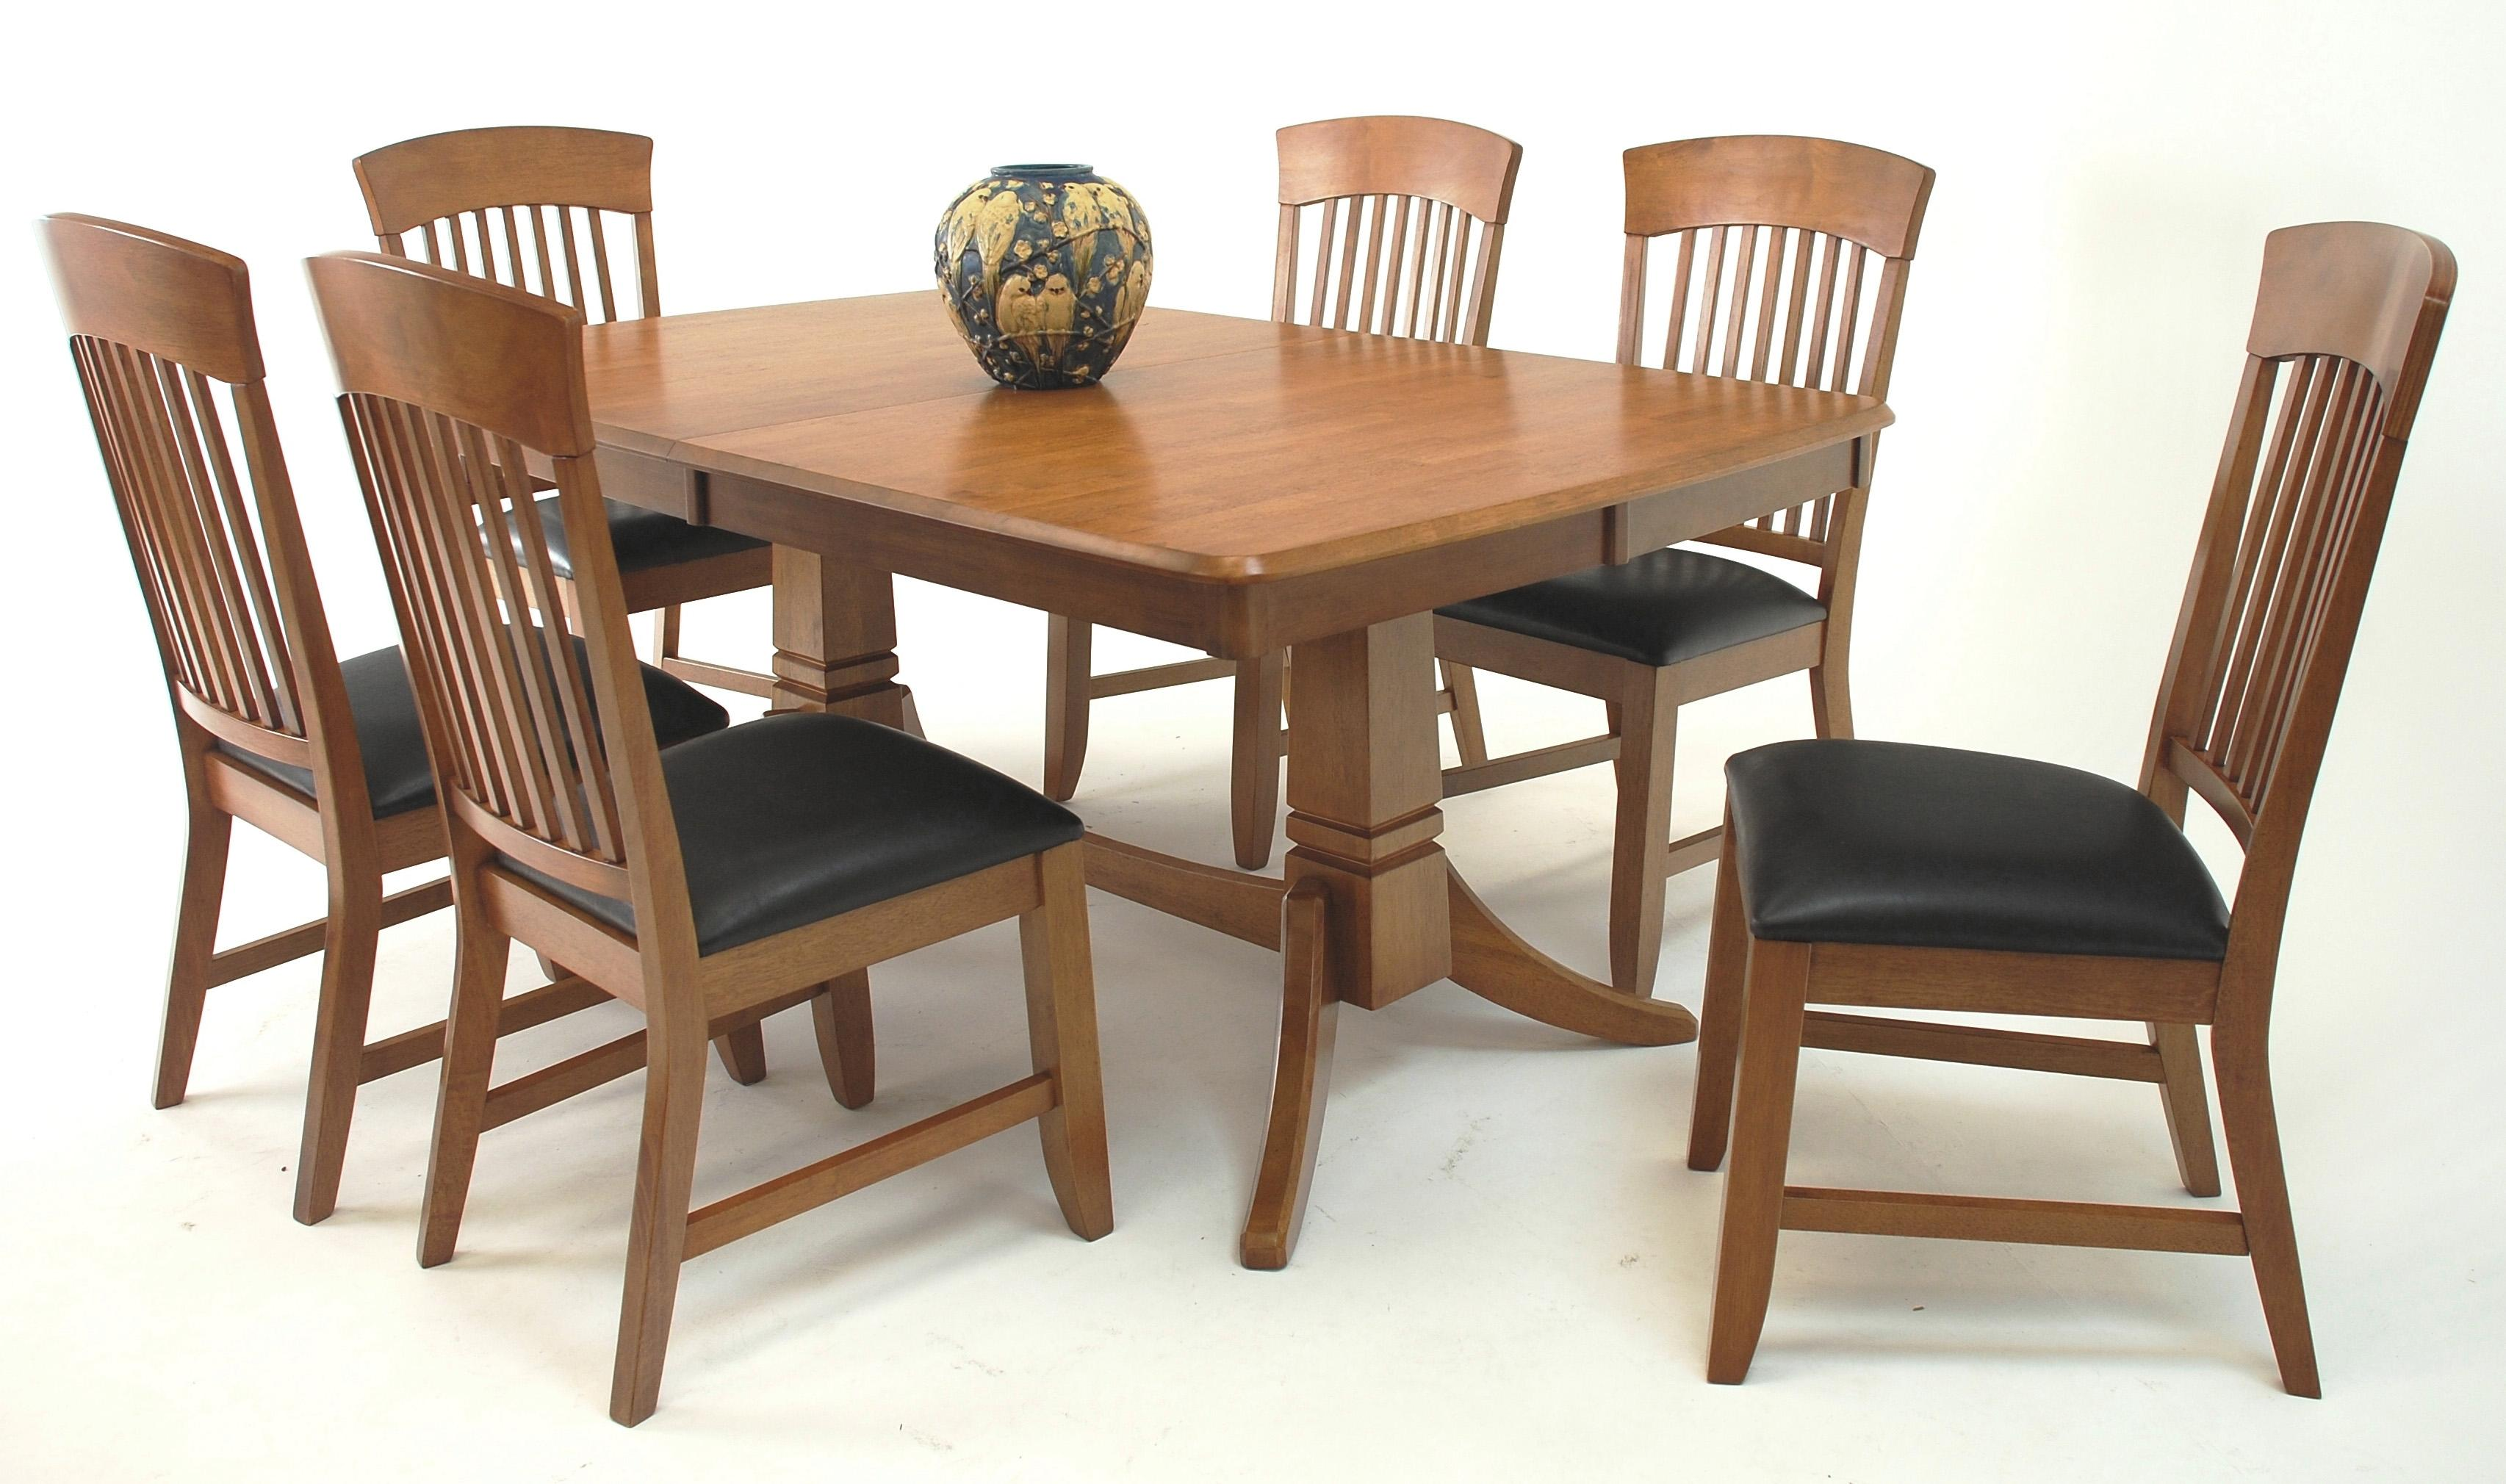 Suburban home trestle dining table and chair set broadway Dining room table and chairs